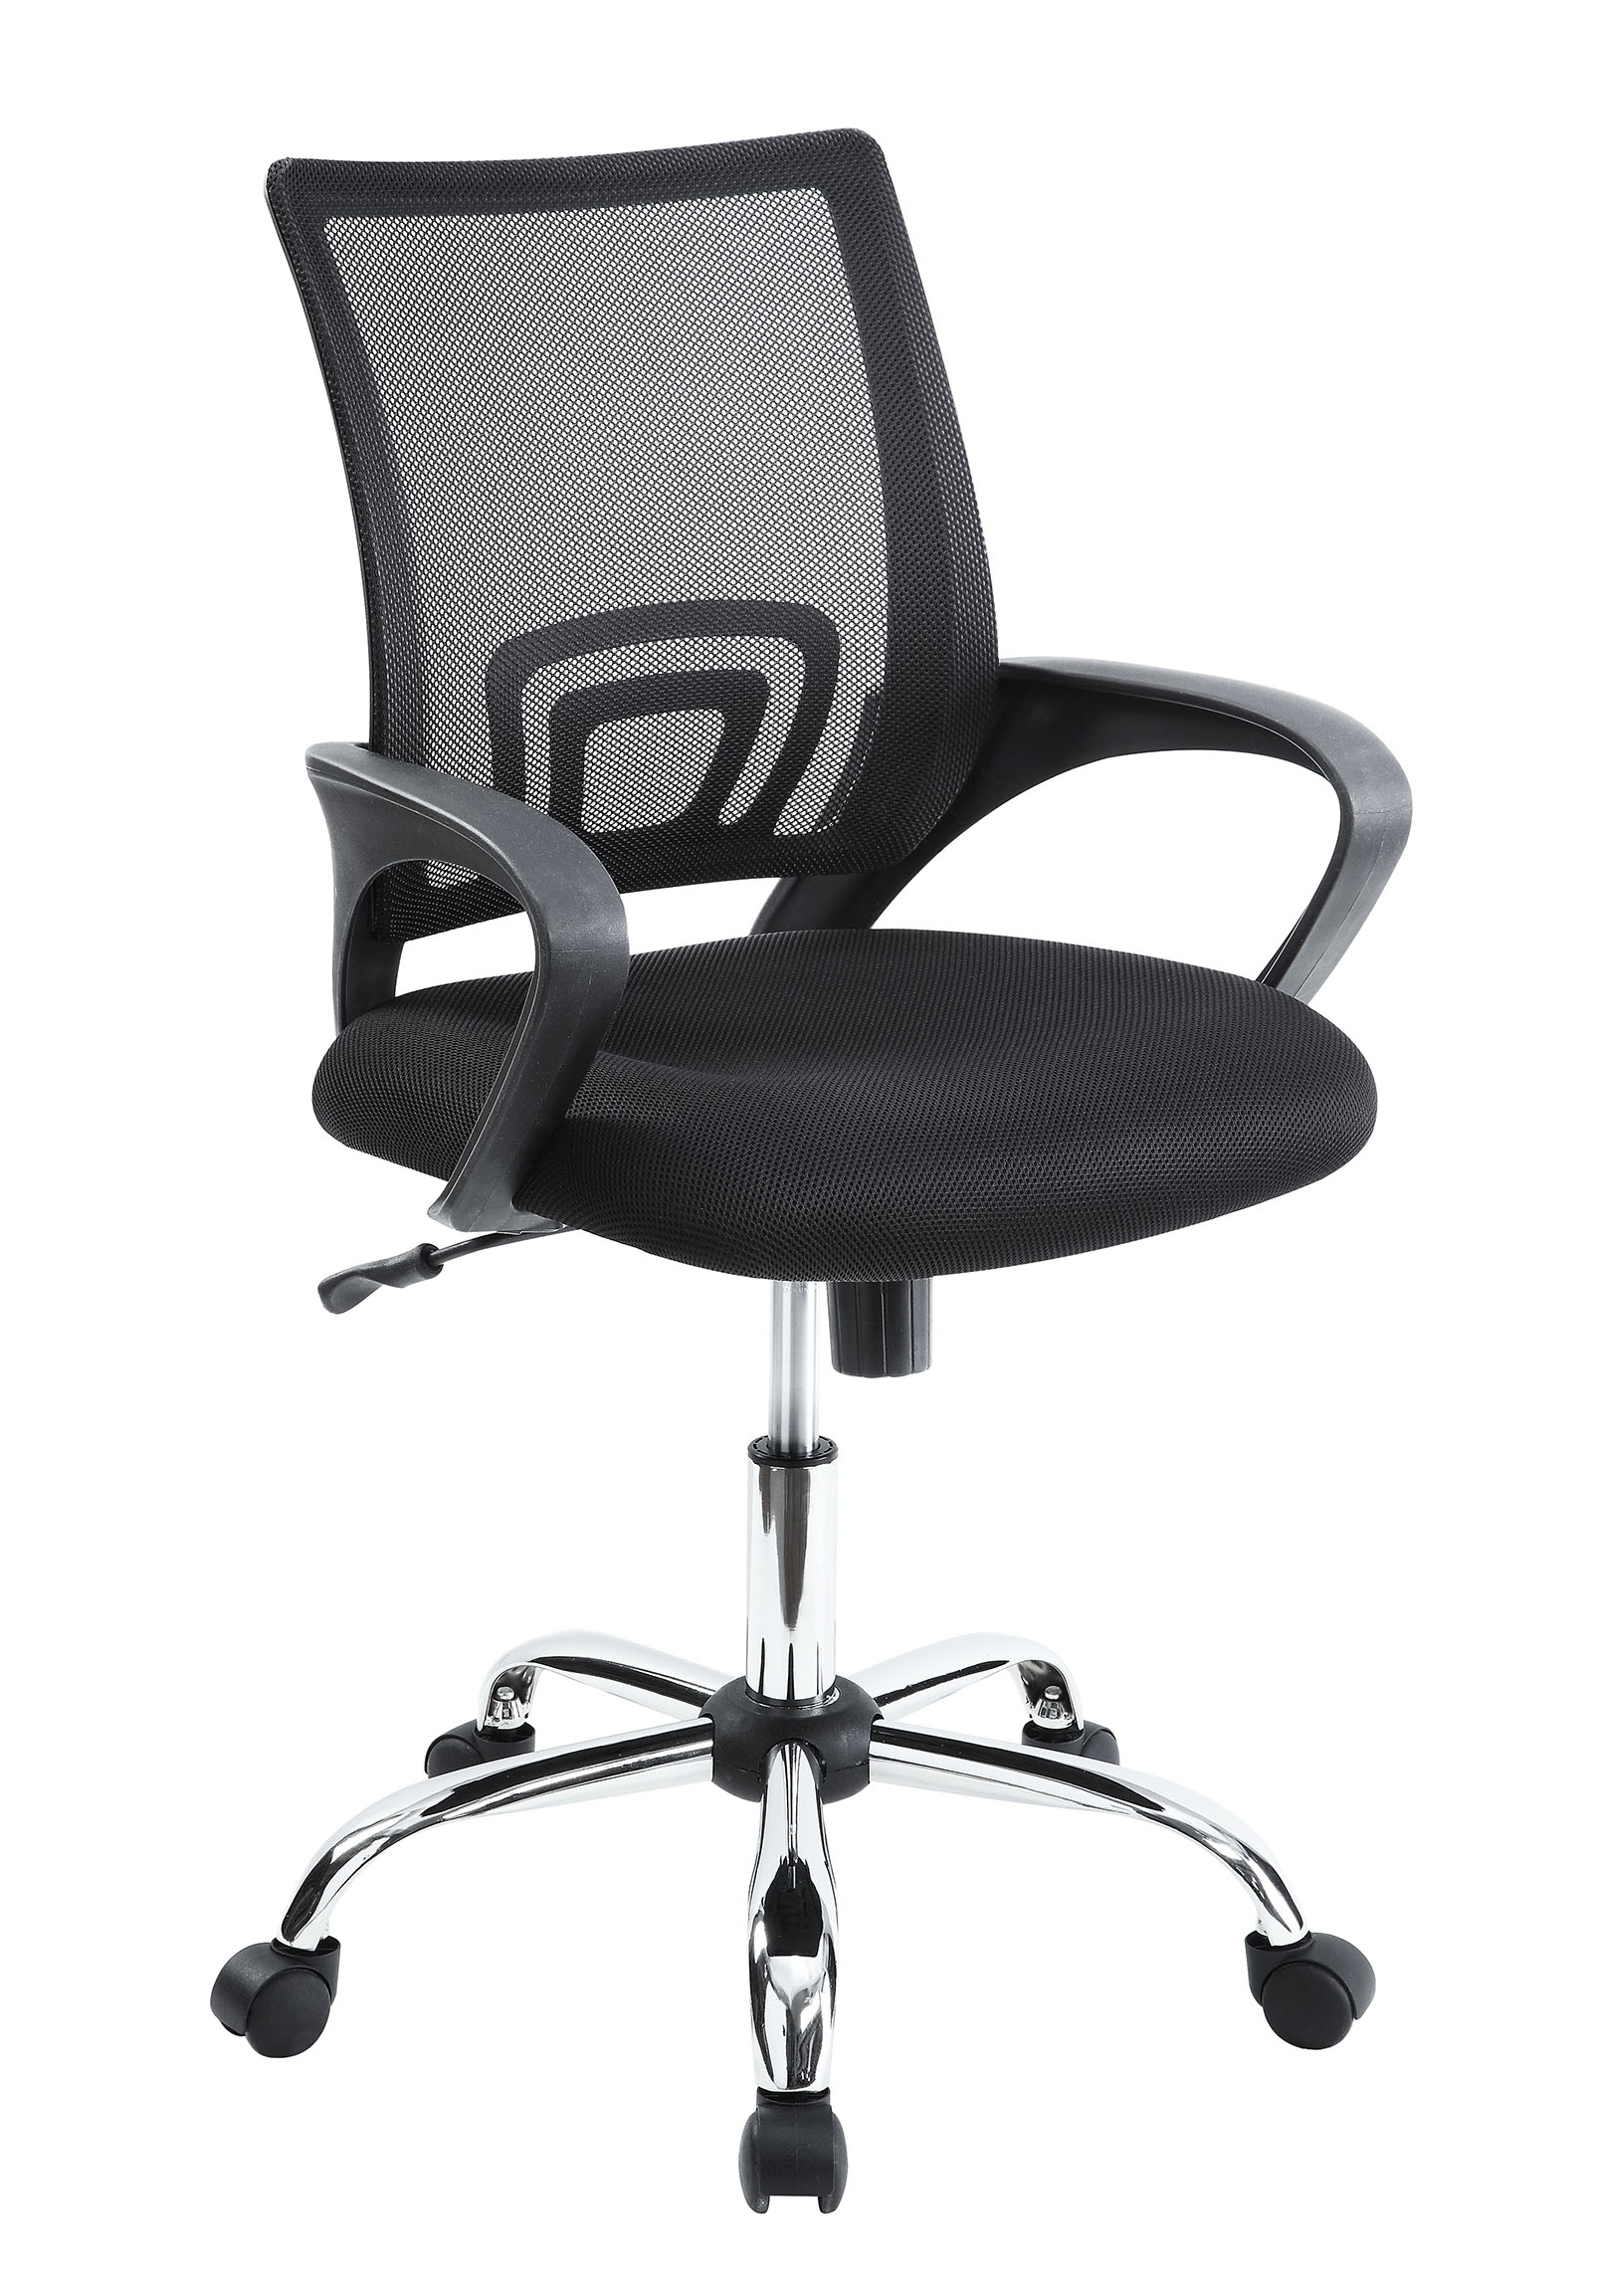 Mainstays Mesh Office Chair with Arms - Walmart.com